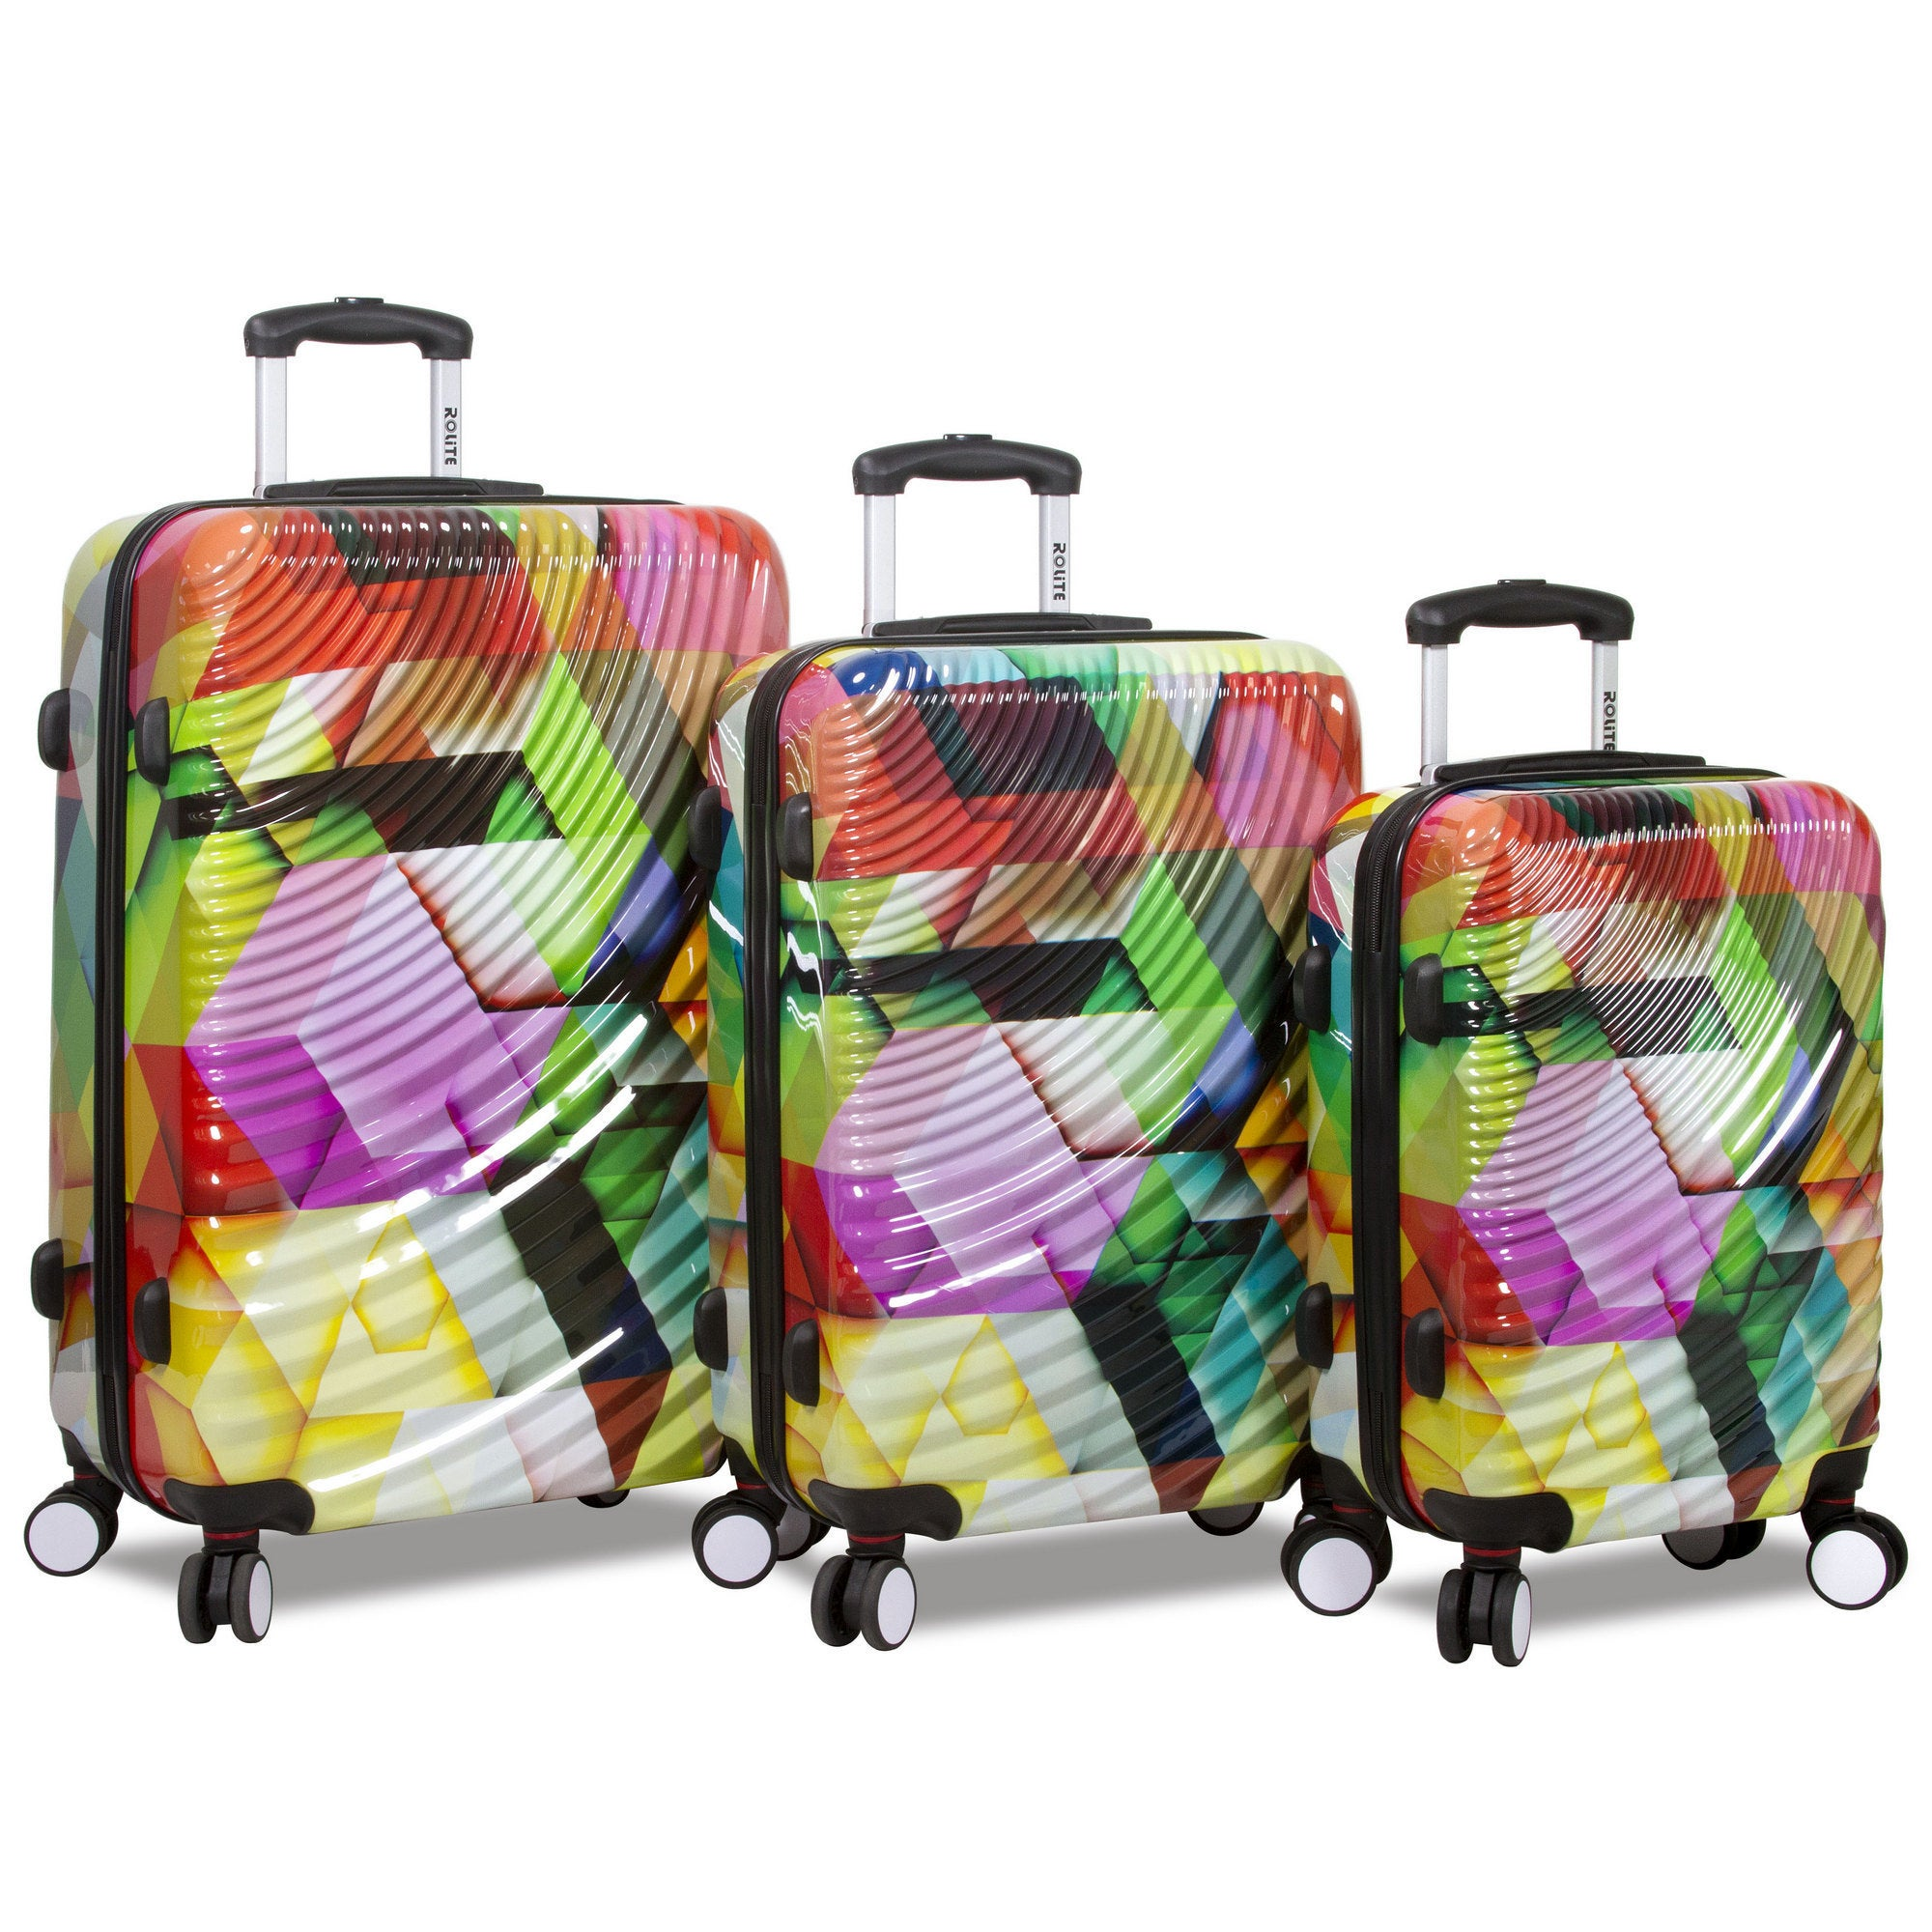 98ba55957 Graphic Luggage | Shop our Best Luggage & Bags Deals Online at Overstock